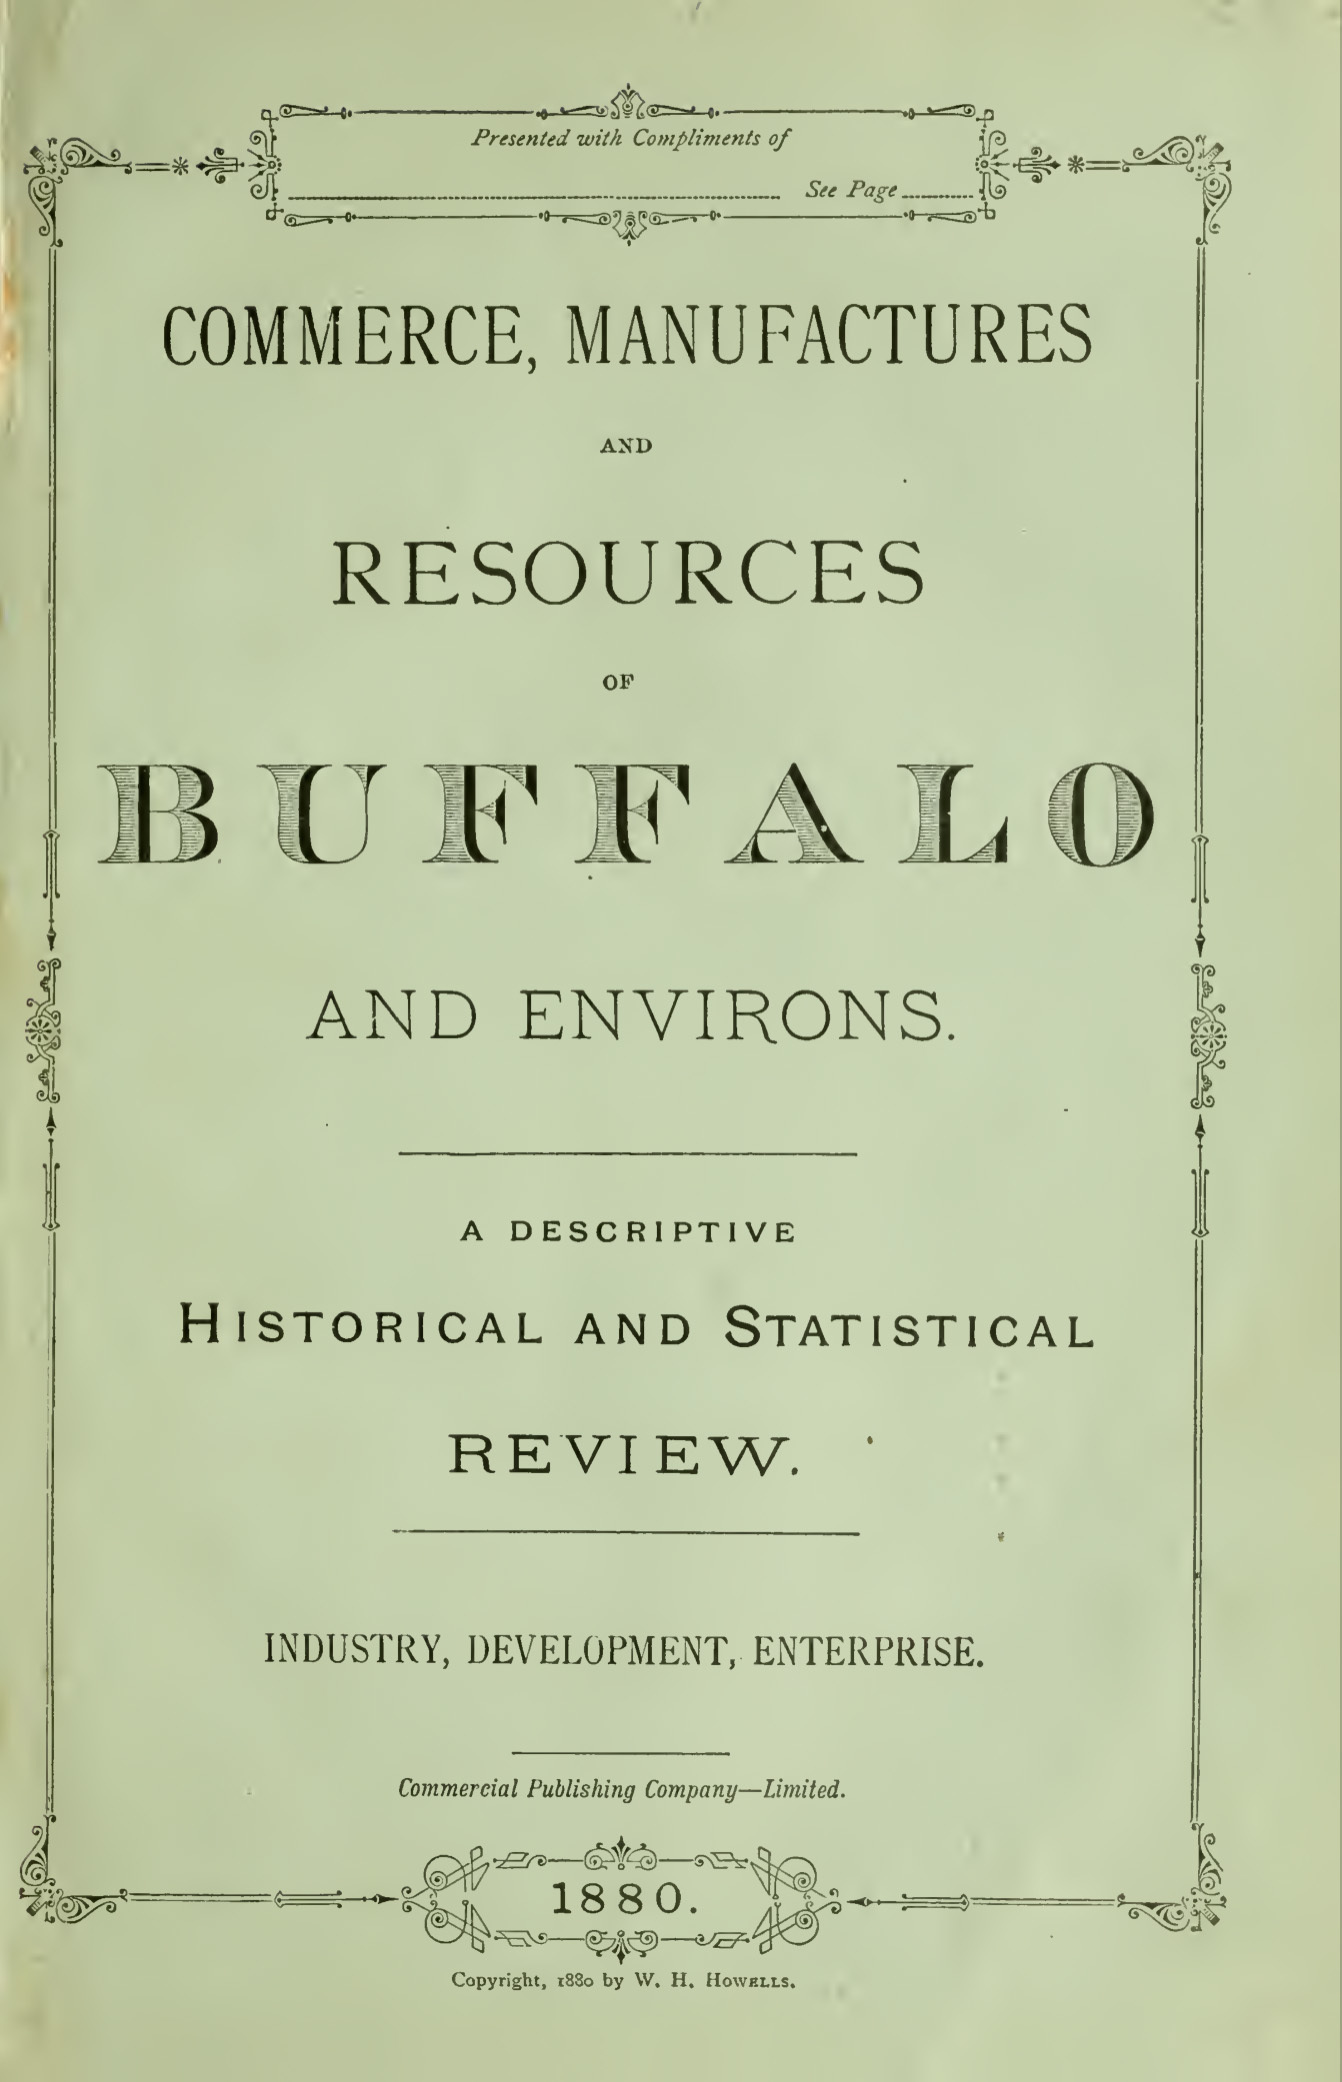 Commerce, Manufactures and Resources of Buffalo and Environs, cover (1880).jpg